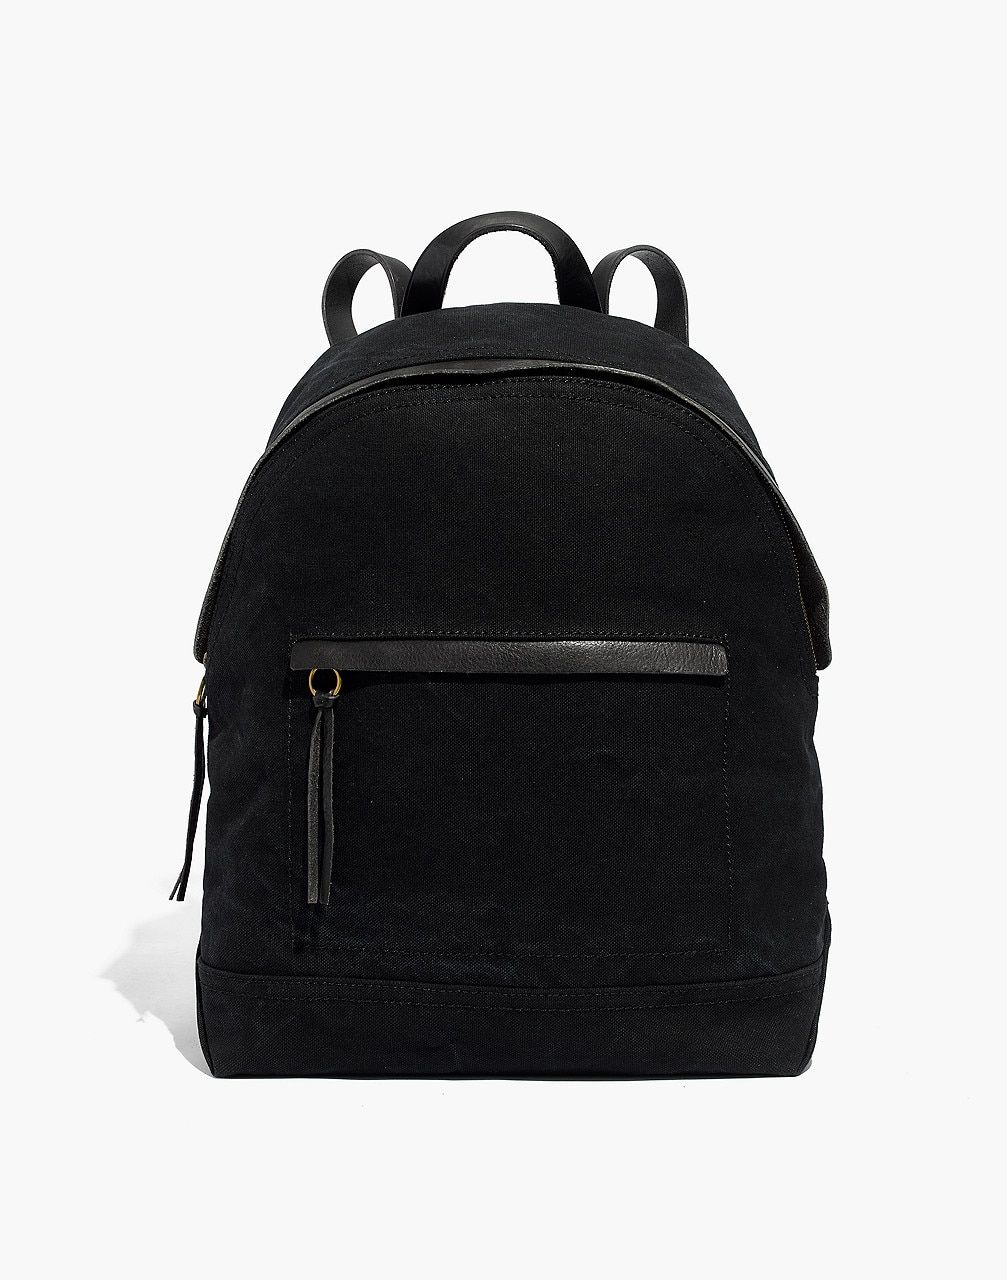 0973adf1bb The Adelaide Backpack